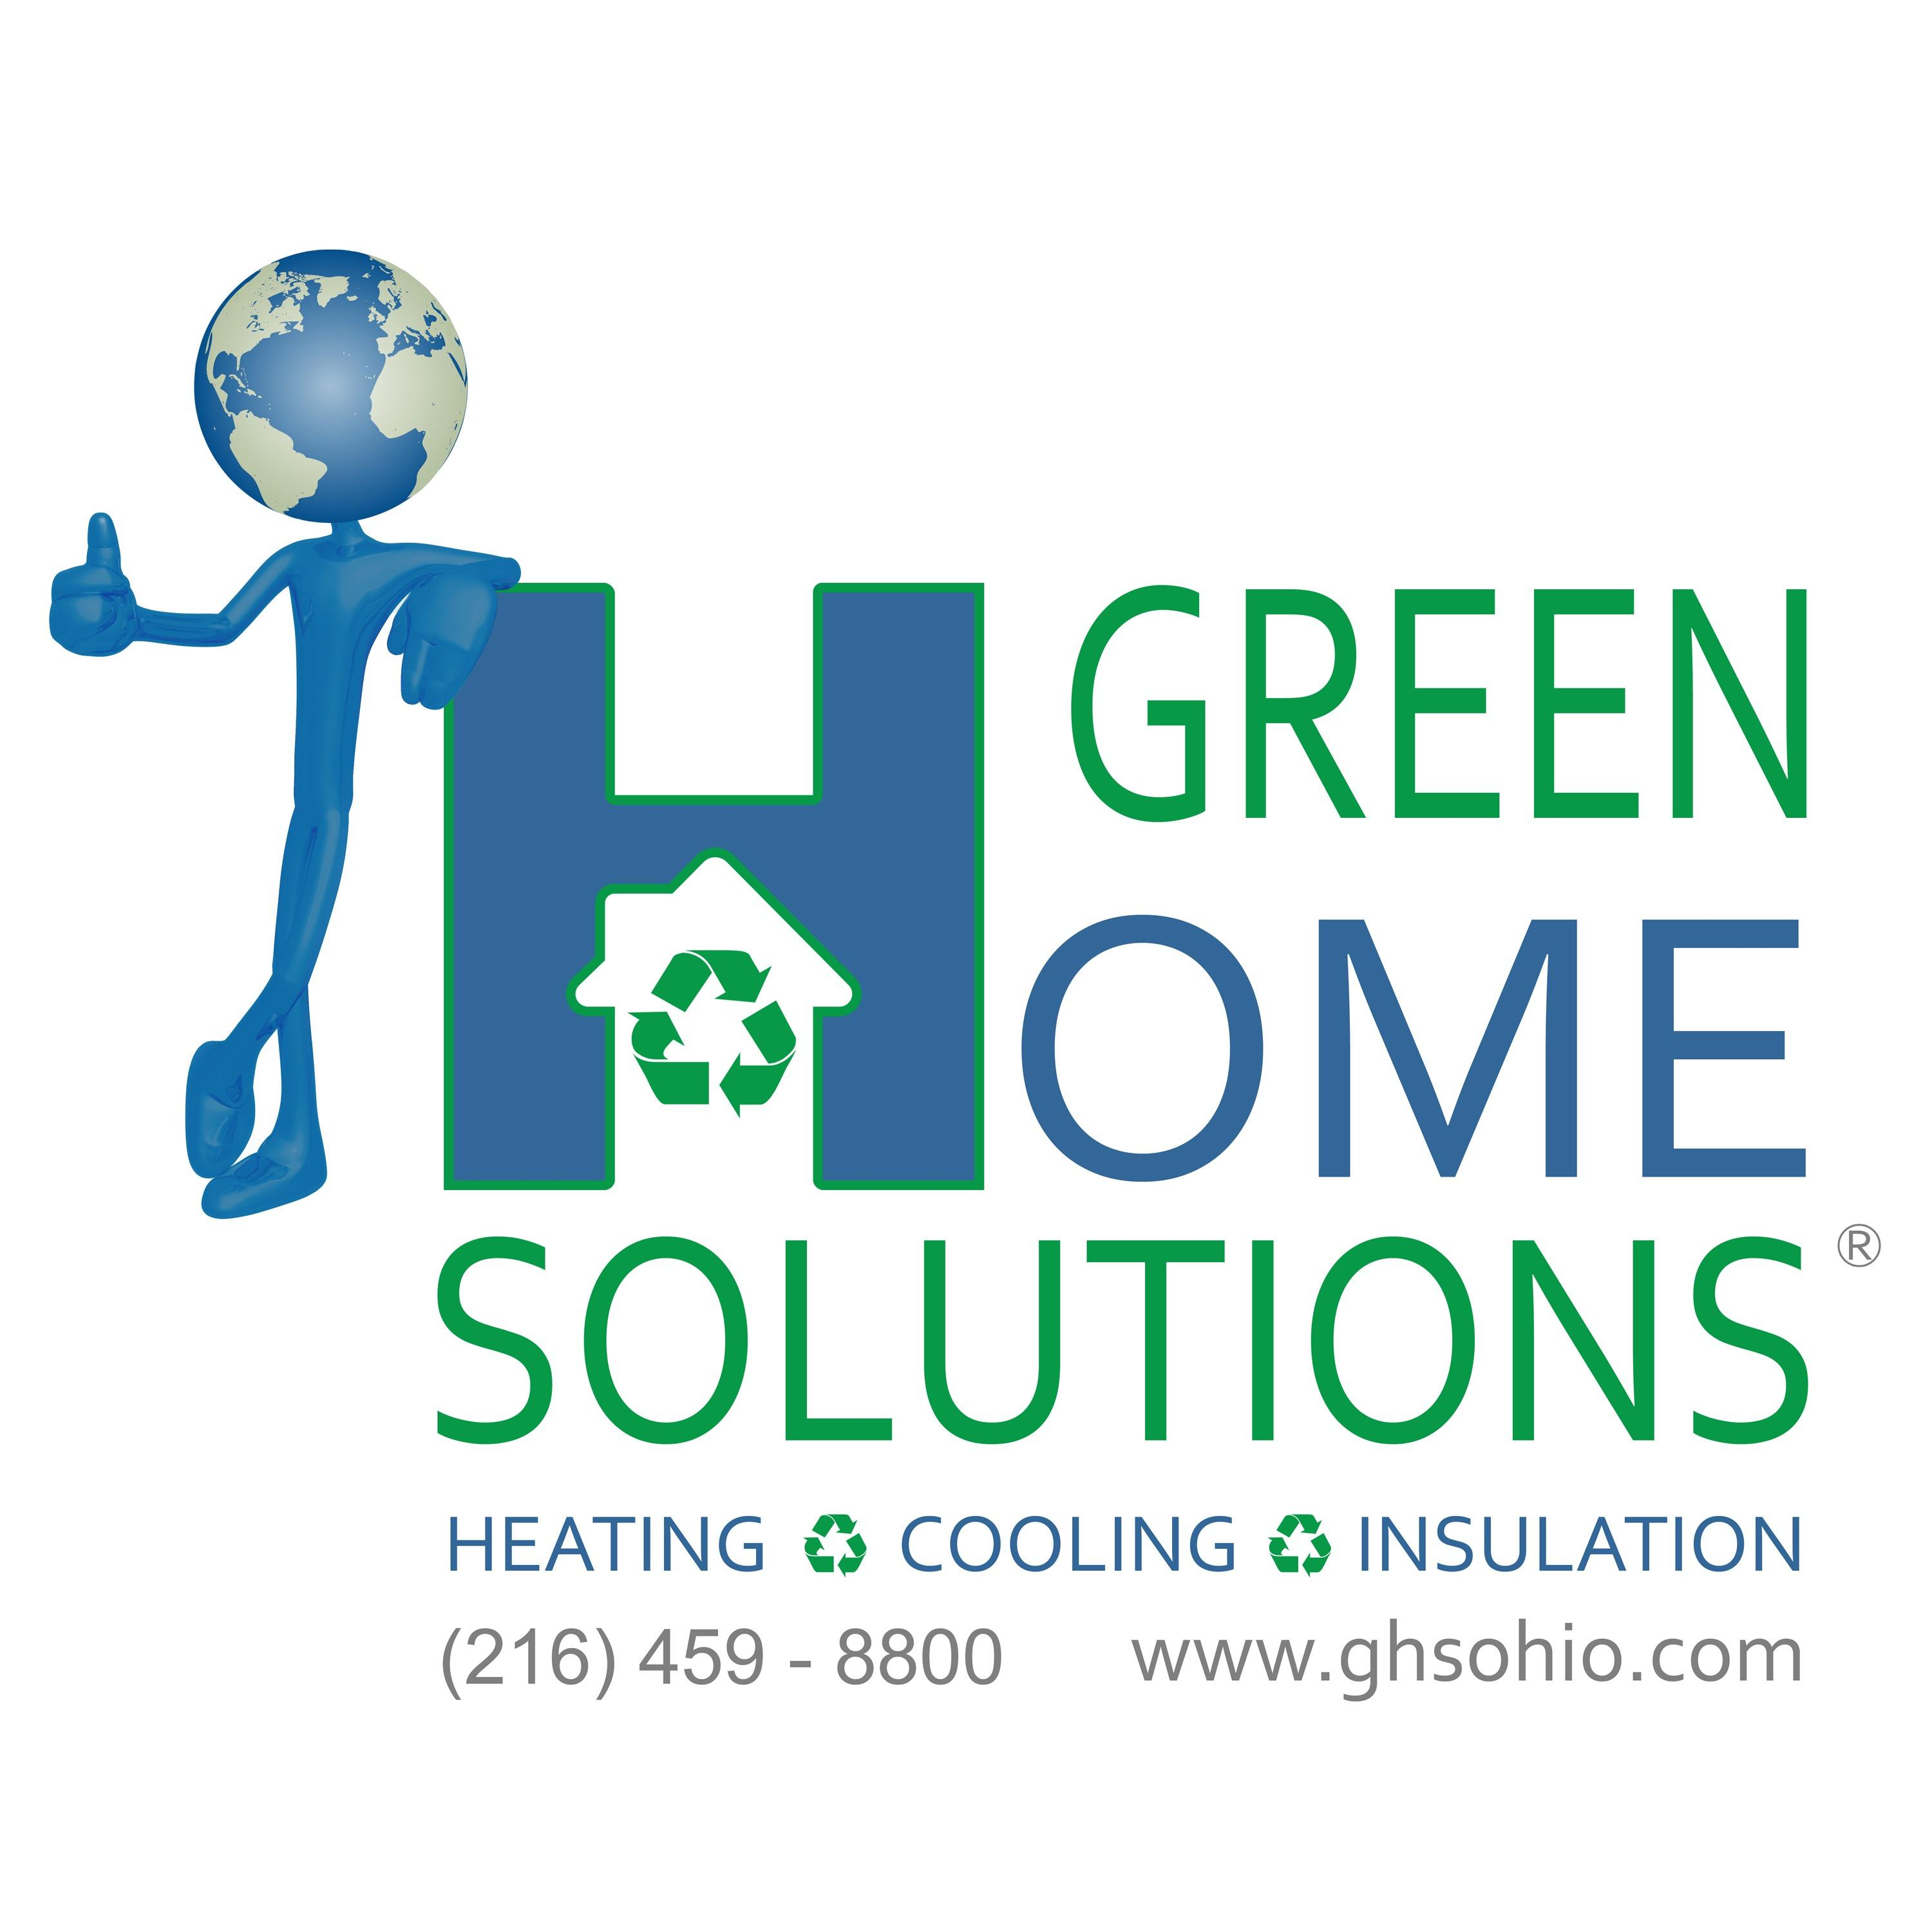 Green Home Solutions-Heating, Cooling & Insulation